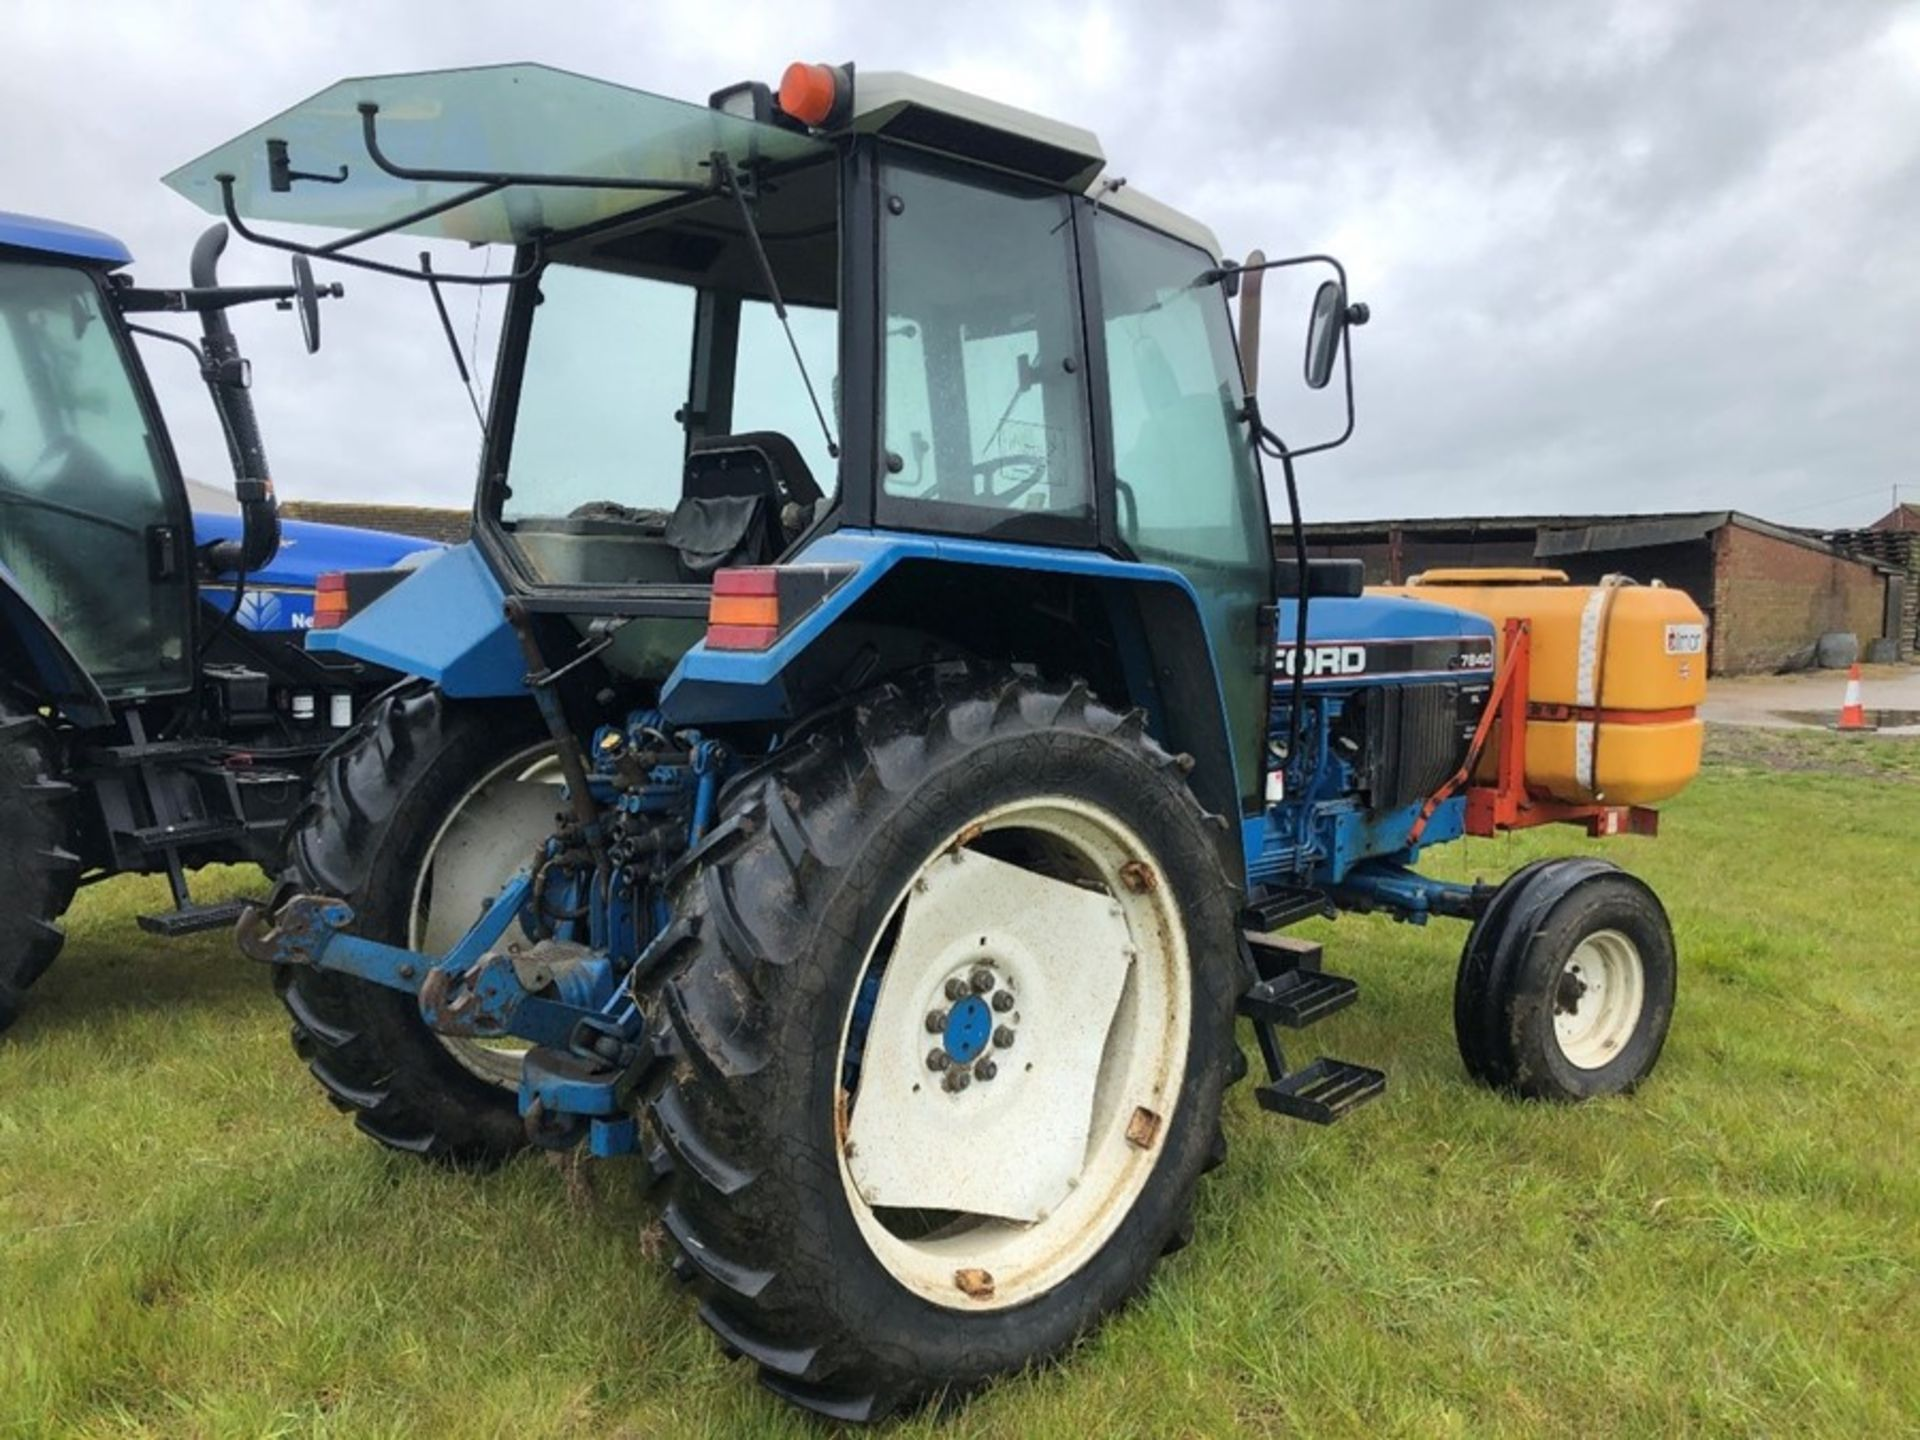 (94) Ford 7840 Powerstar SL 2wd tractor, 4,551 hours, dual power. air con, Reg L56 UVL, Rear 13.6 - Image 9 of 11